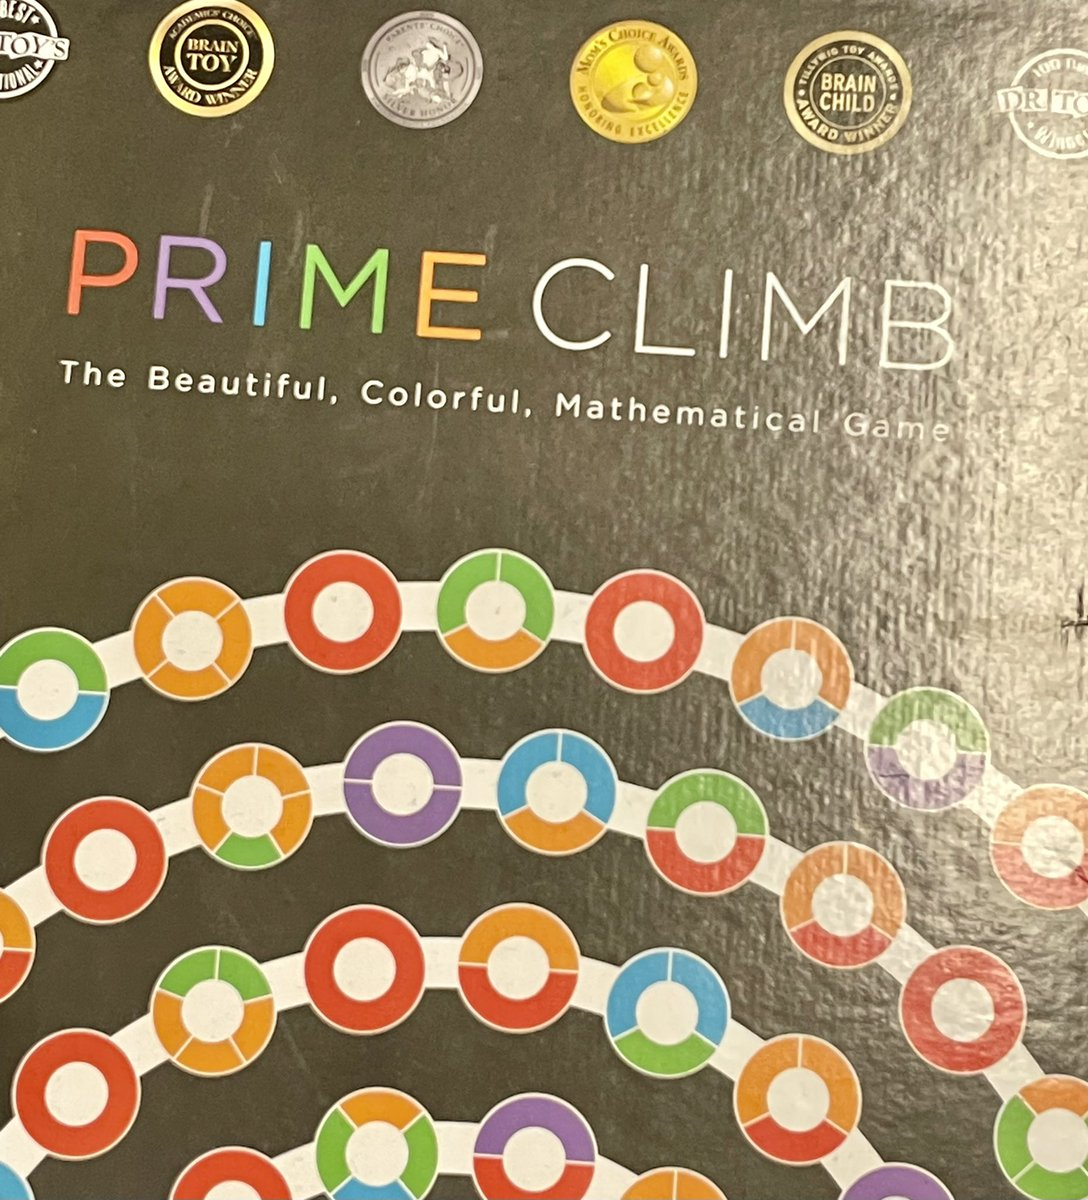 Fifth graders identified during extended patterns on the Prime Climb game board <a target='_blank' href='http://twitter.com/APSGifted'>@APSGifted</a> <a target='_blank' href='https://t.co/yG6aWVv4p6'>https://t.co/yG6aWVv4p6</a>